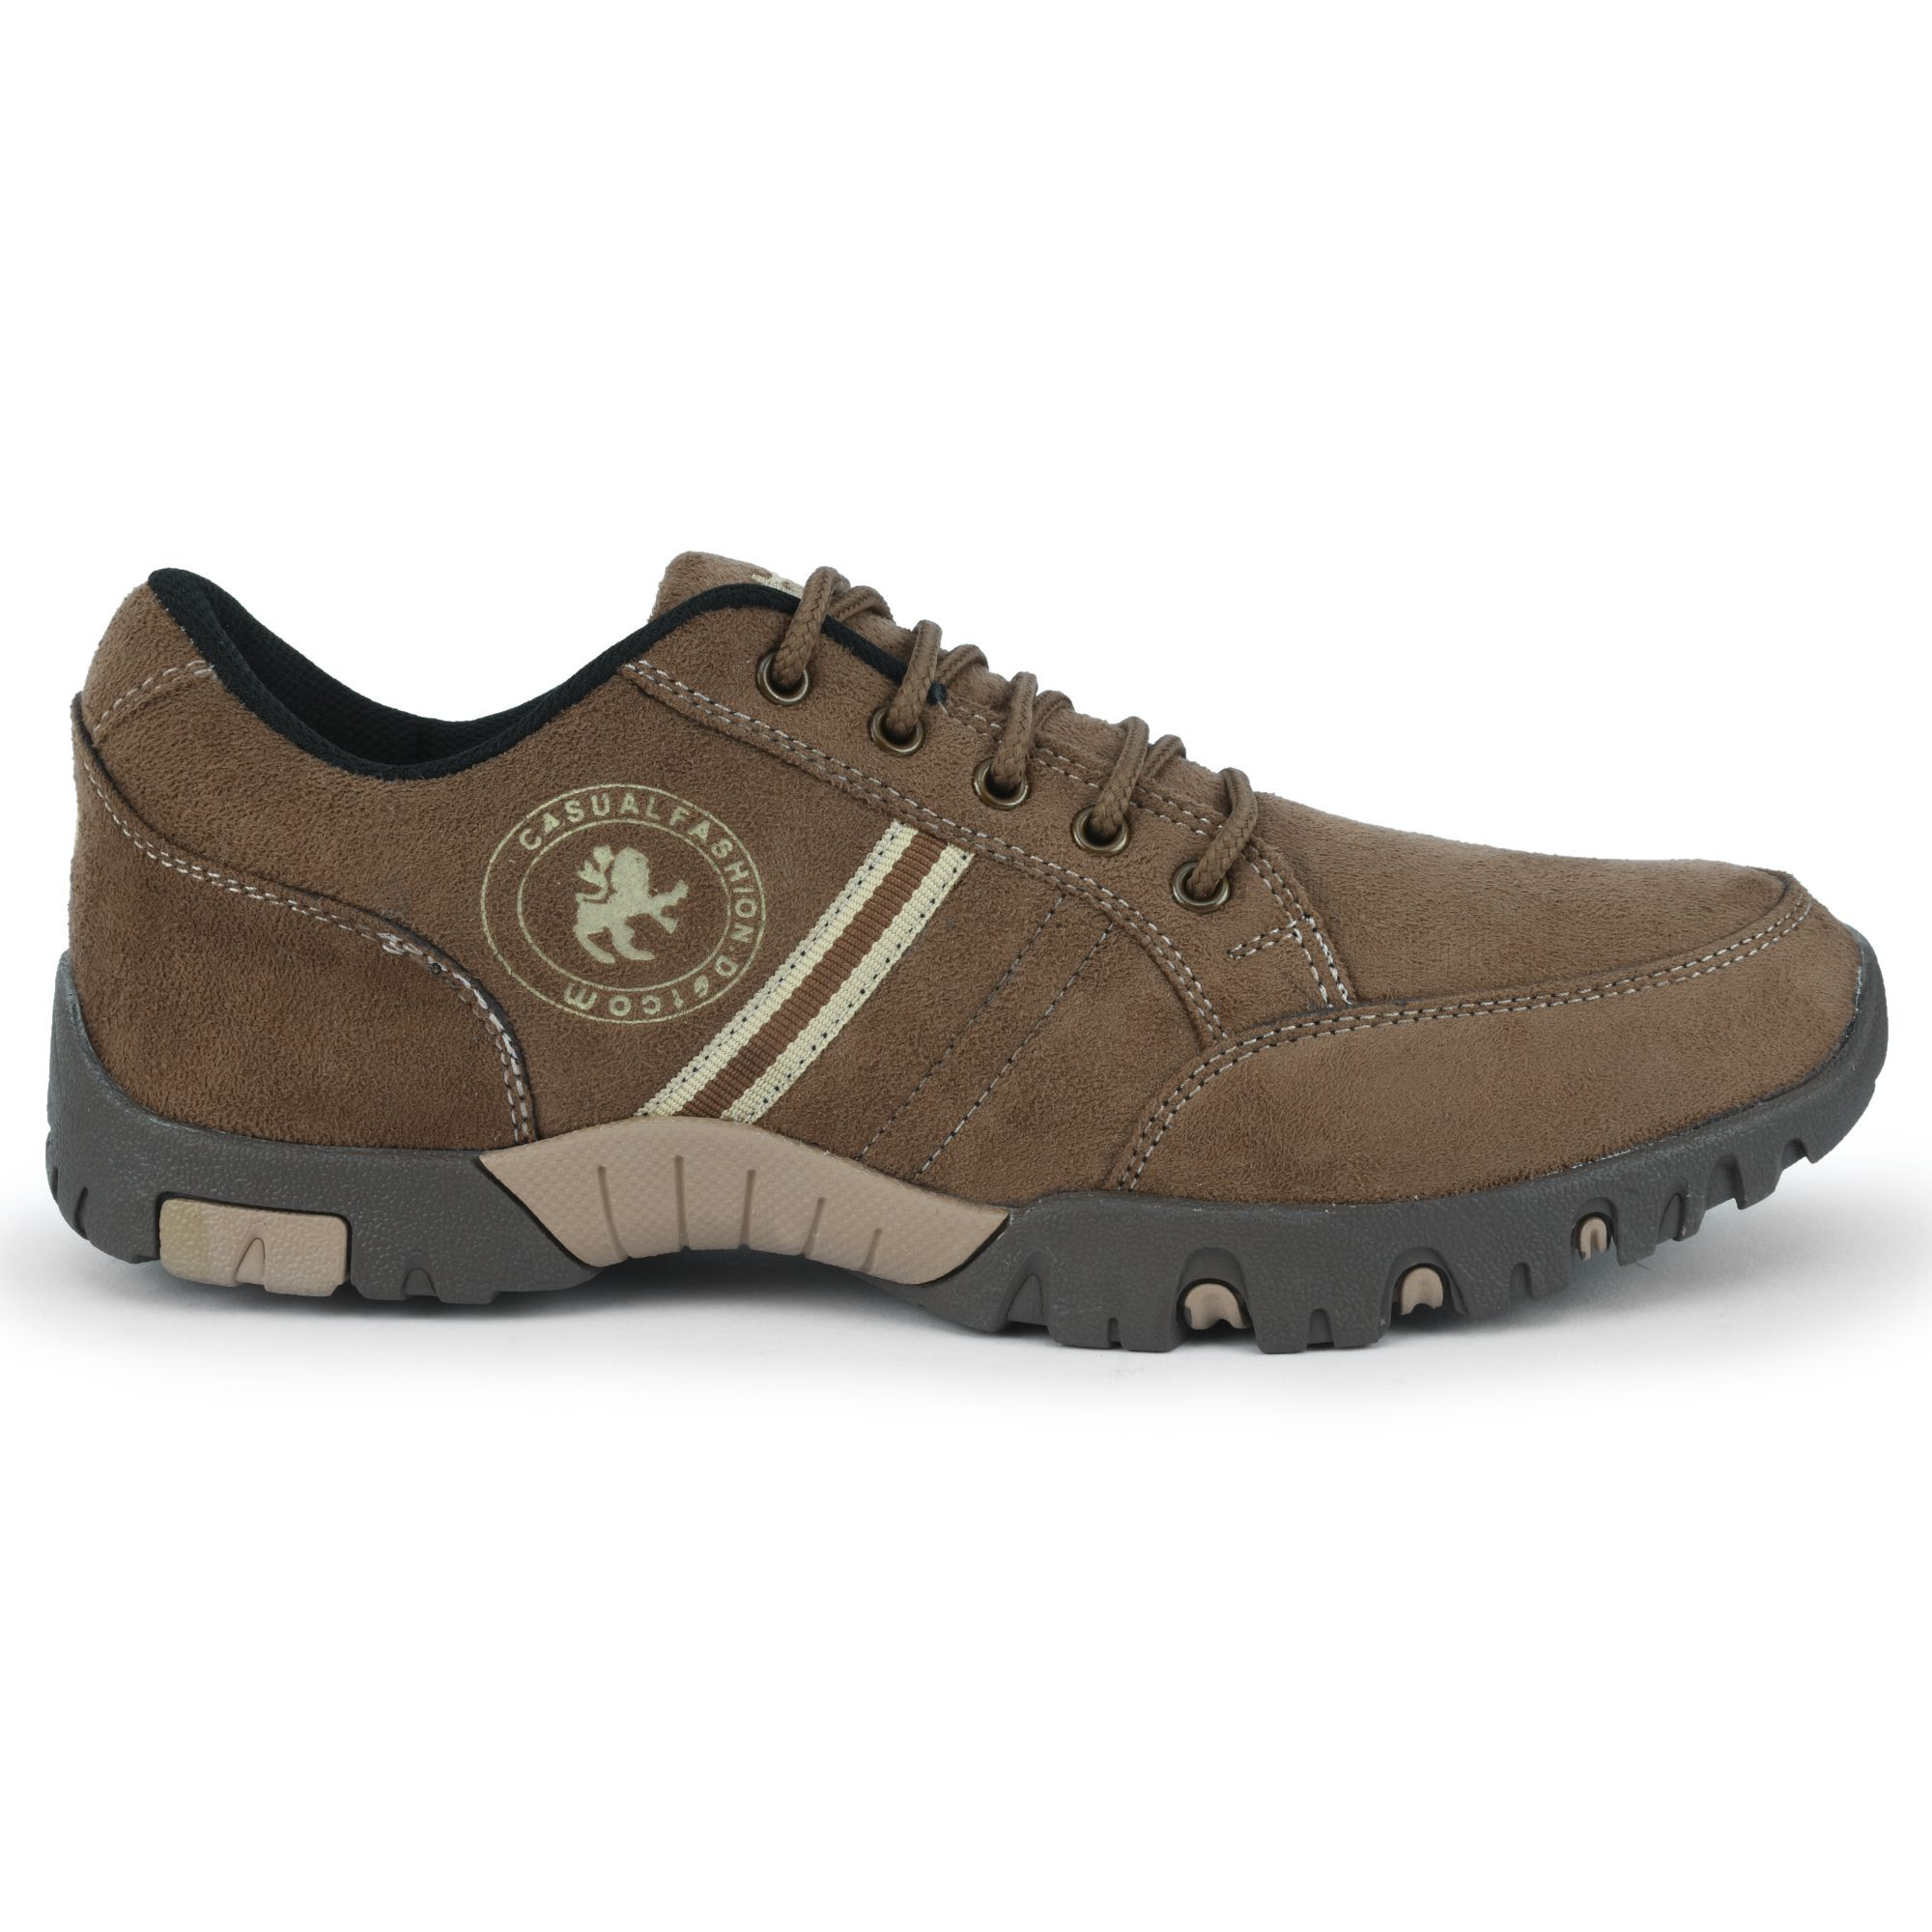 Action Outdoor Beige Casual Shoes - Buy